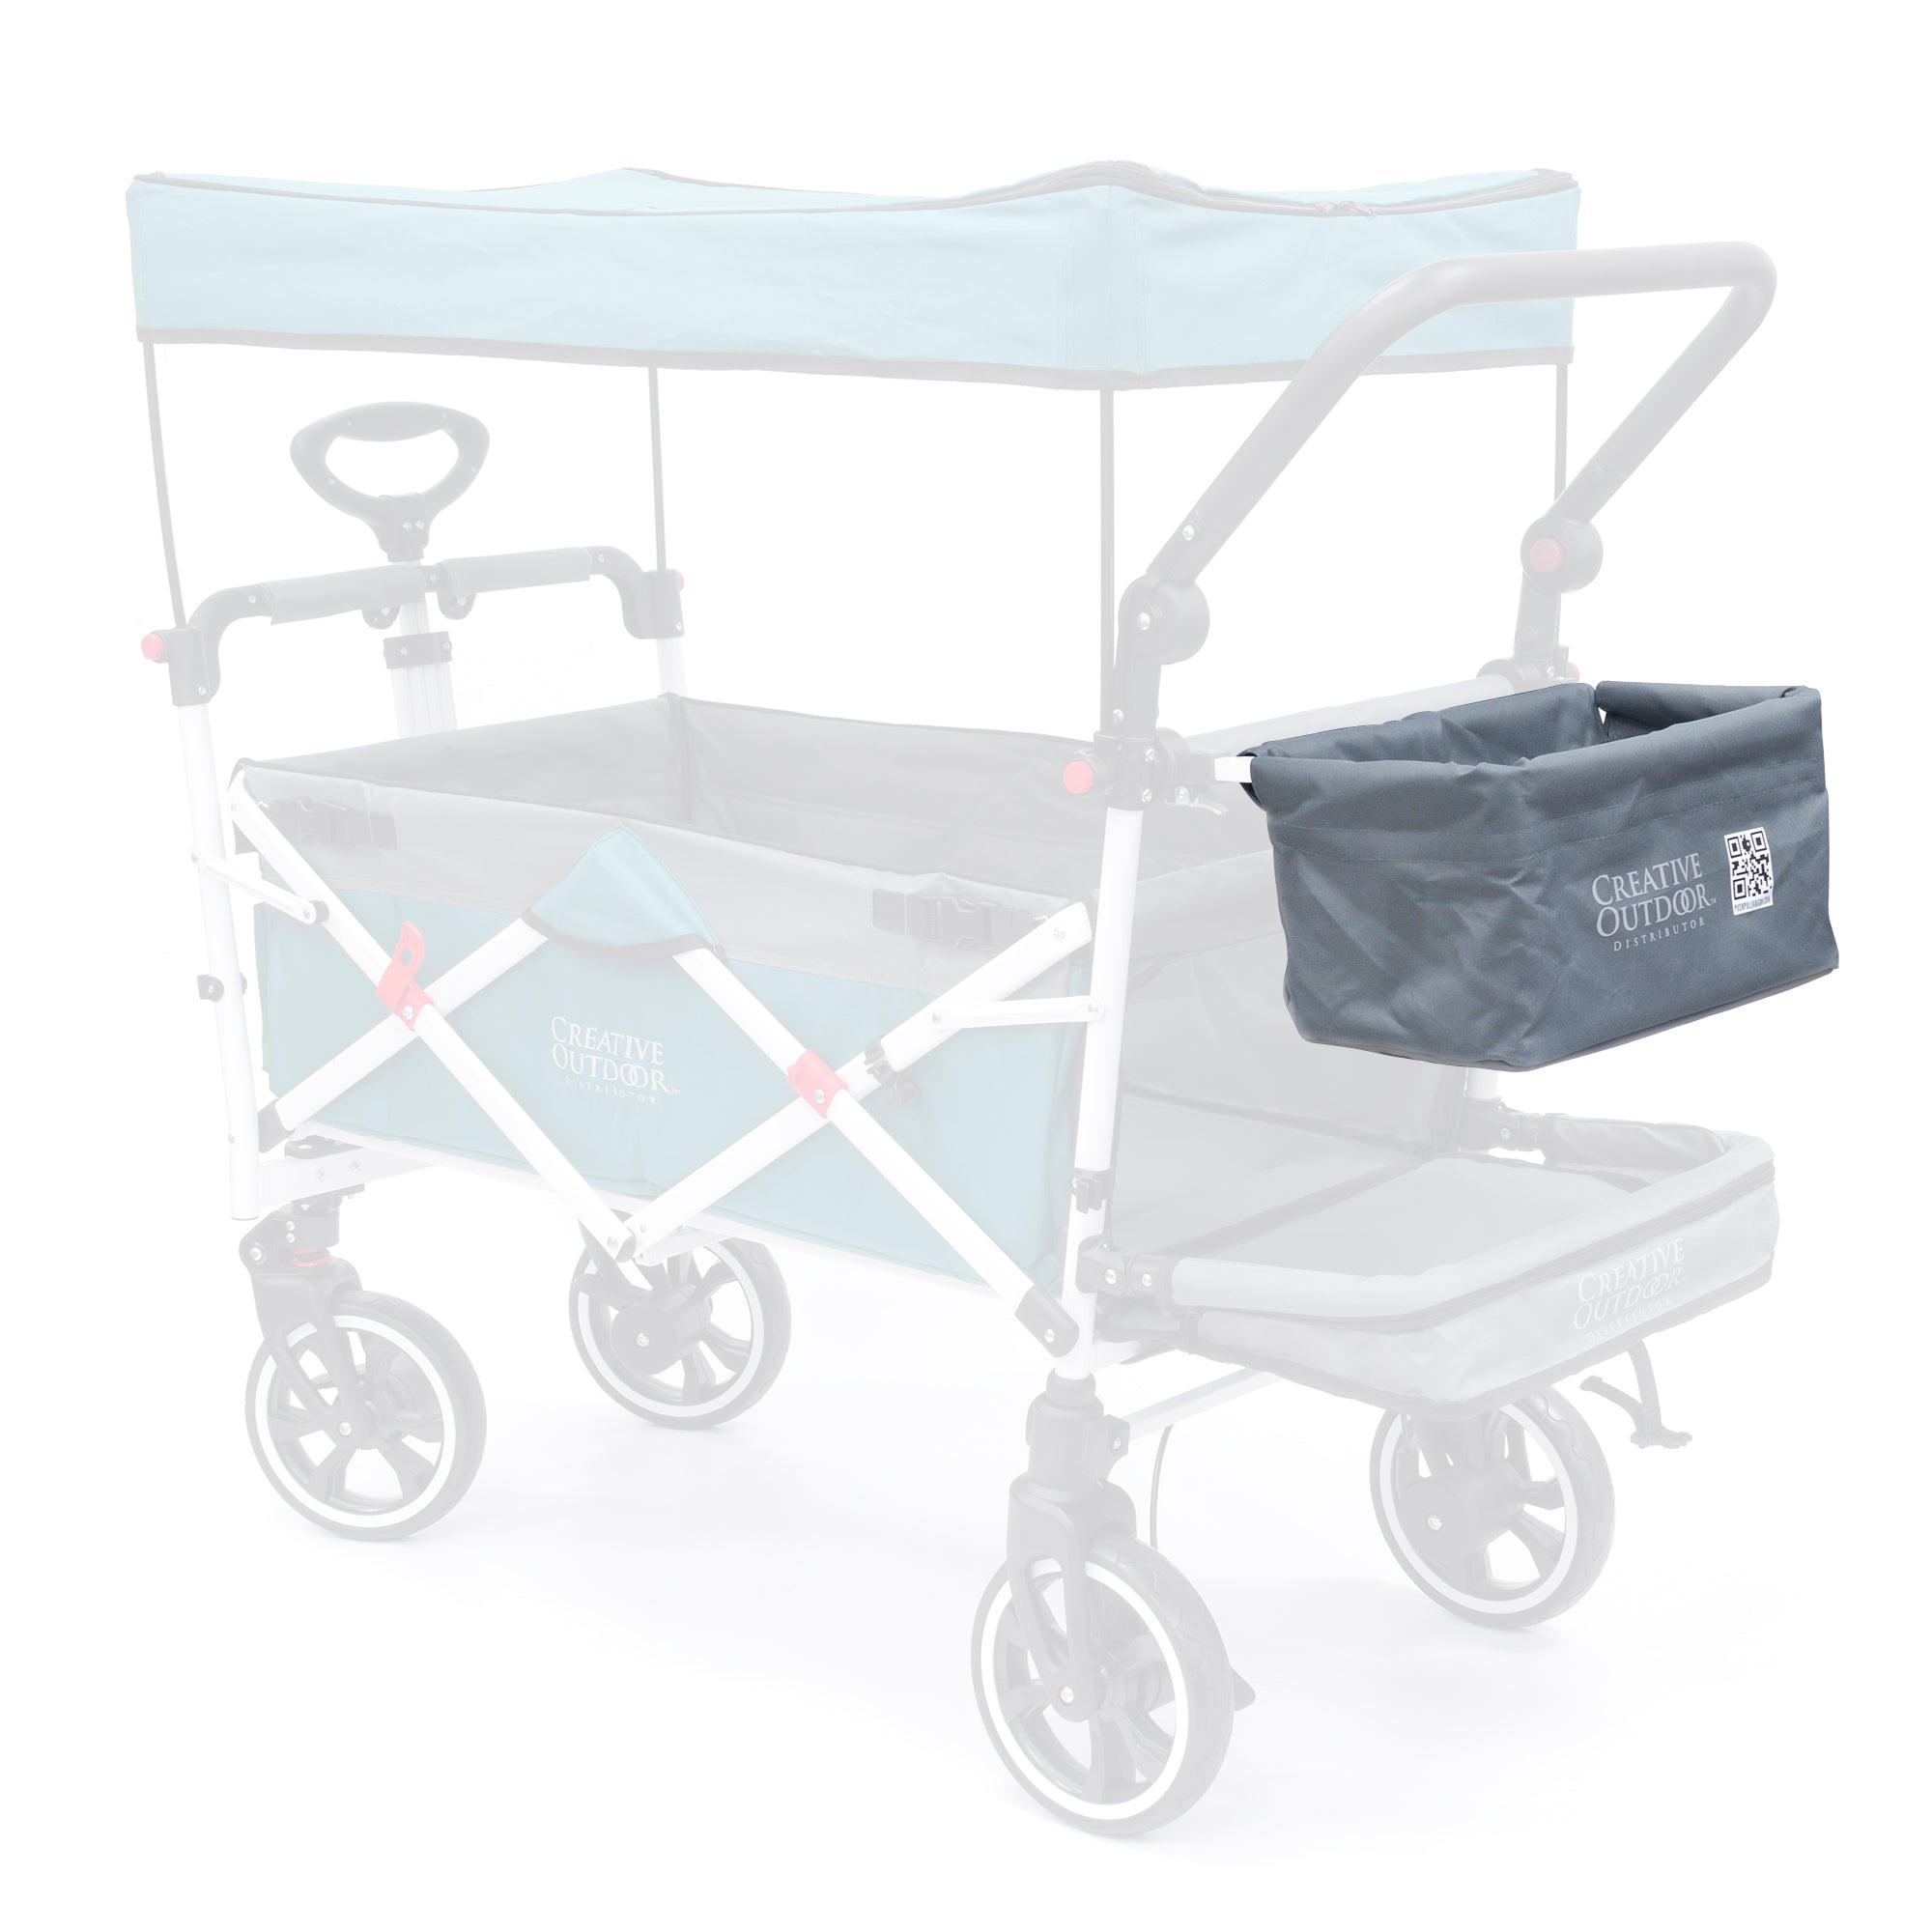 Push Pull Folding Wagon Replacement Basket Fabric